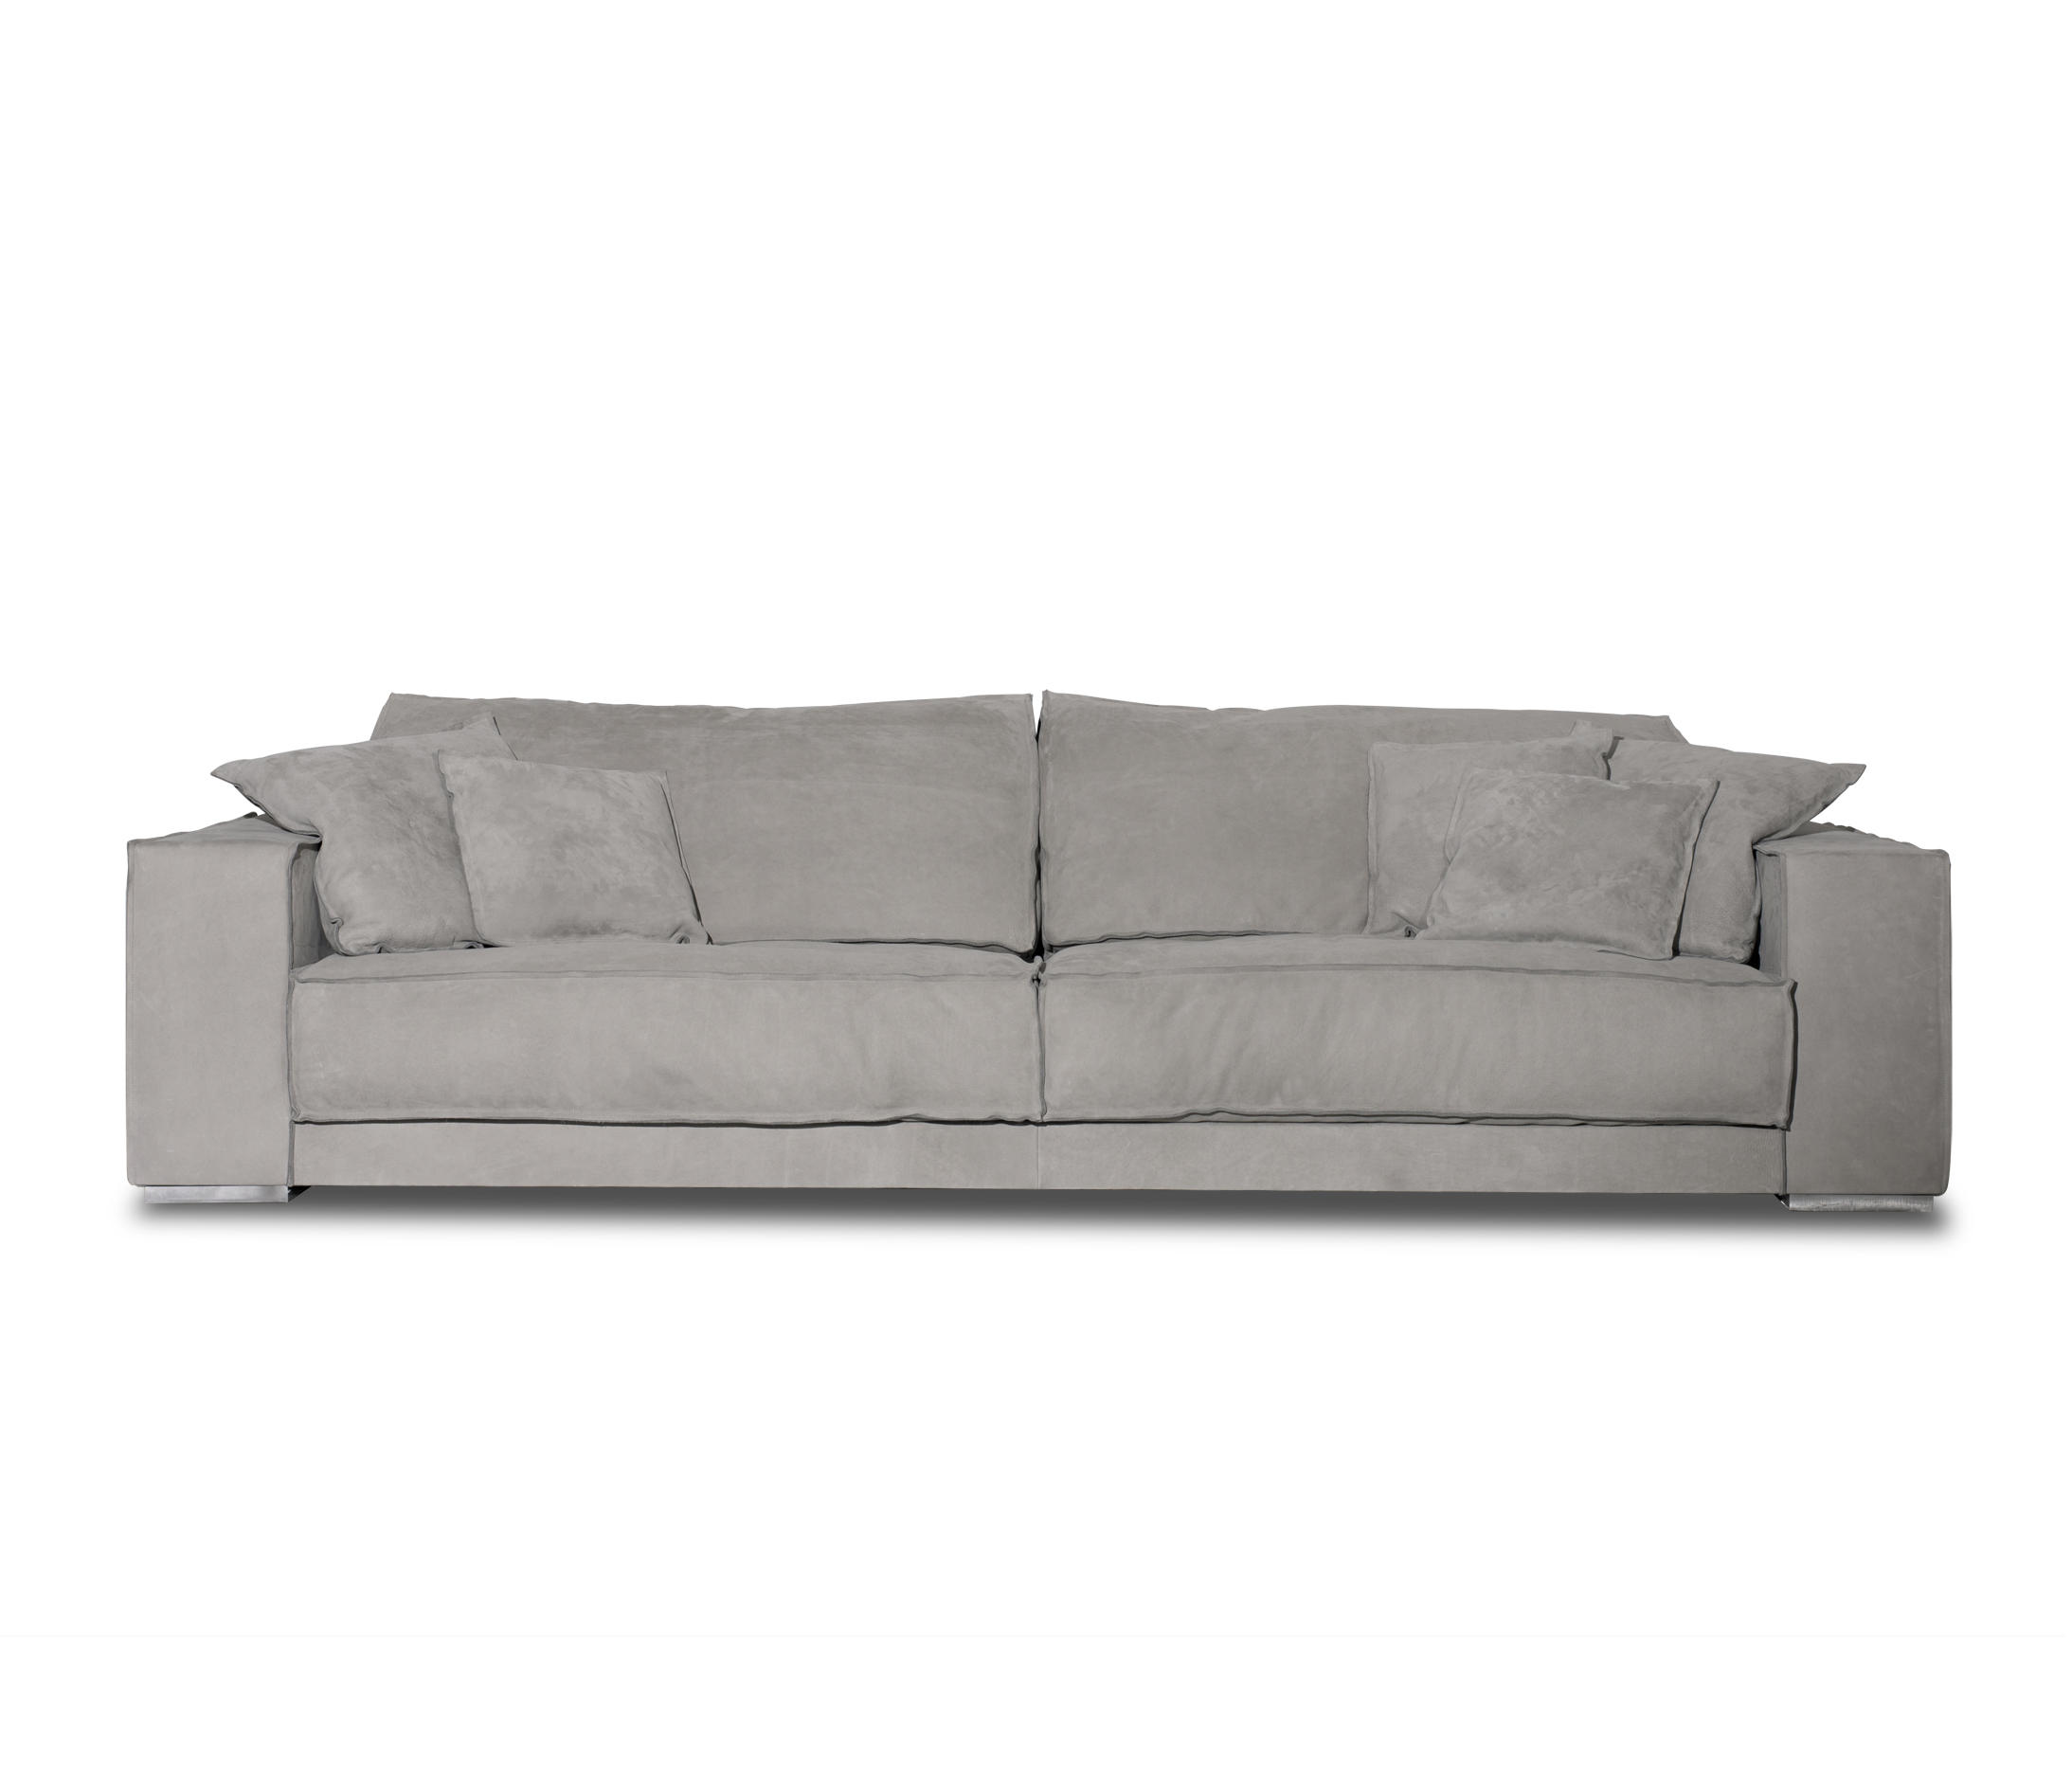 Budapest soft sofa lounge sofas from baxter architonic for Baxter budapest